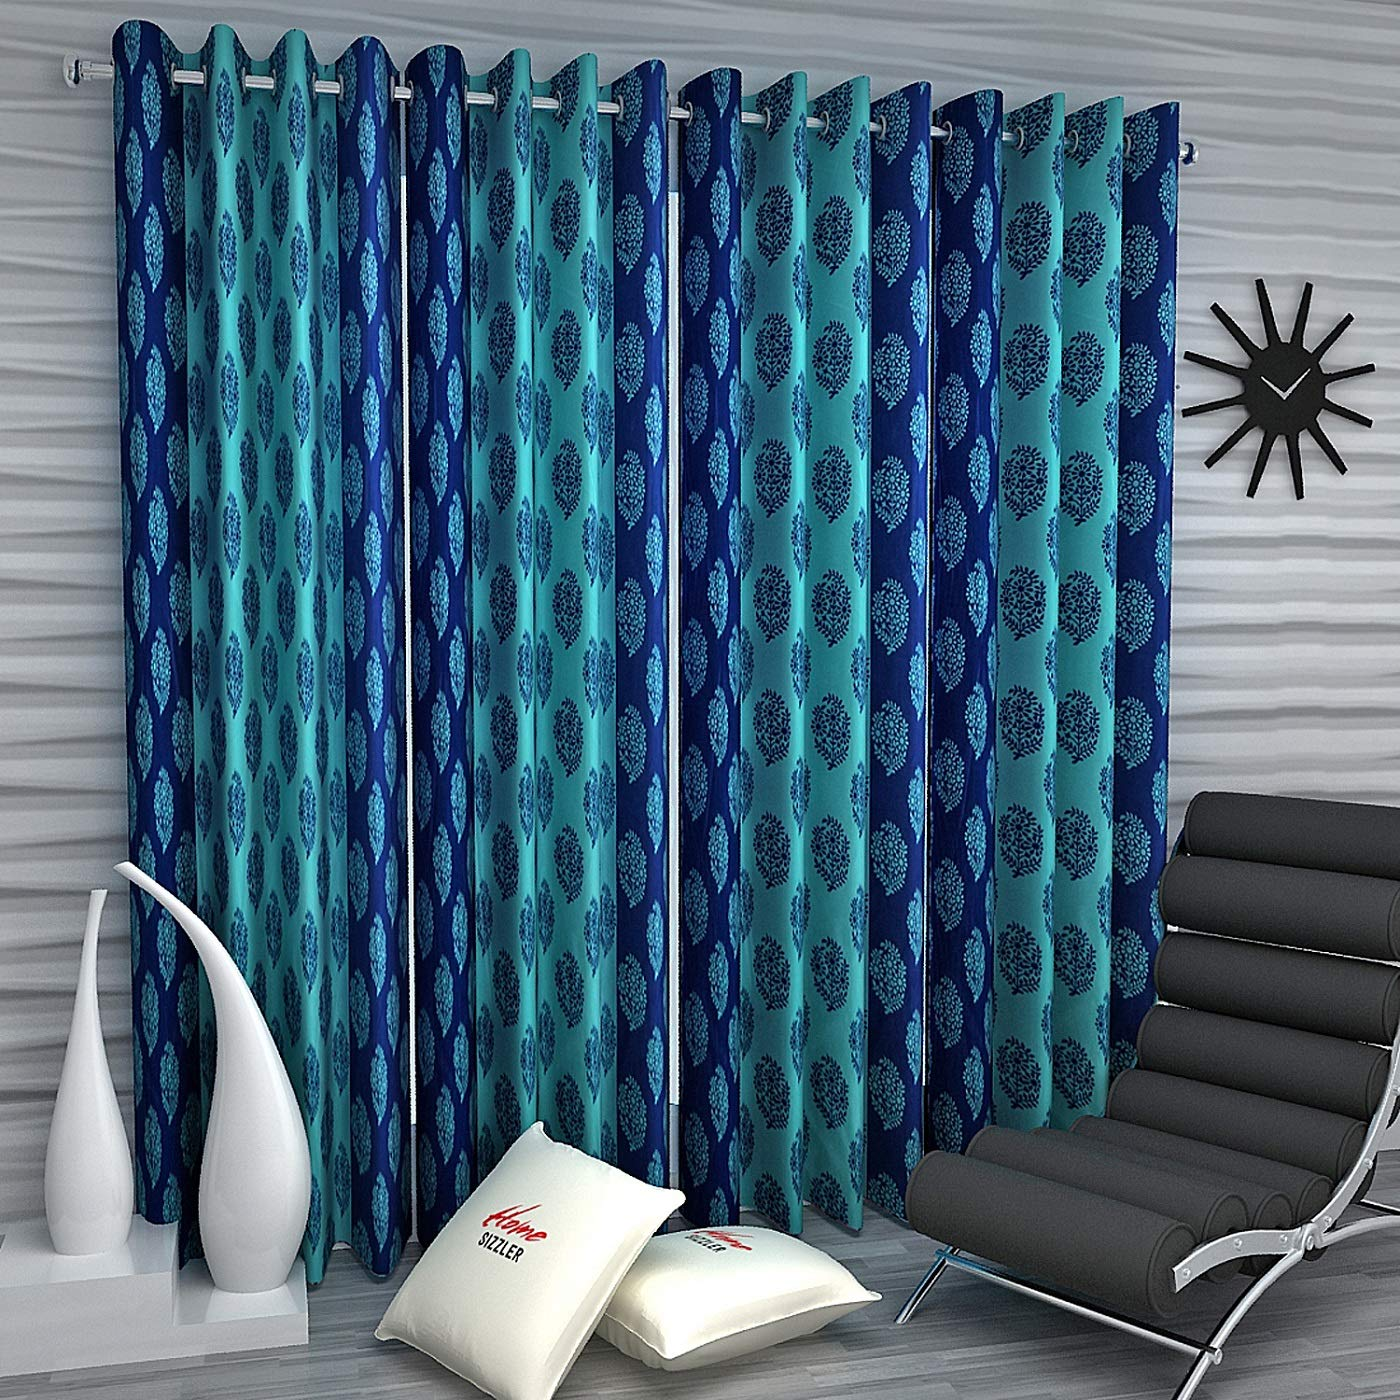 Home Sizzler 4 Piece Eyelet Polyester Door Curtain Set - 7ft, Blue